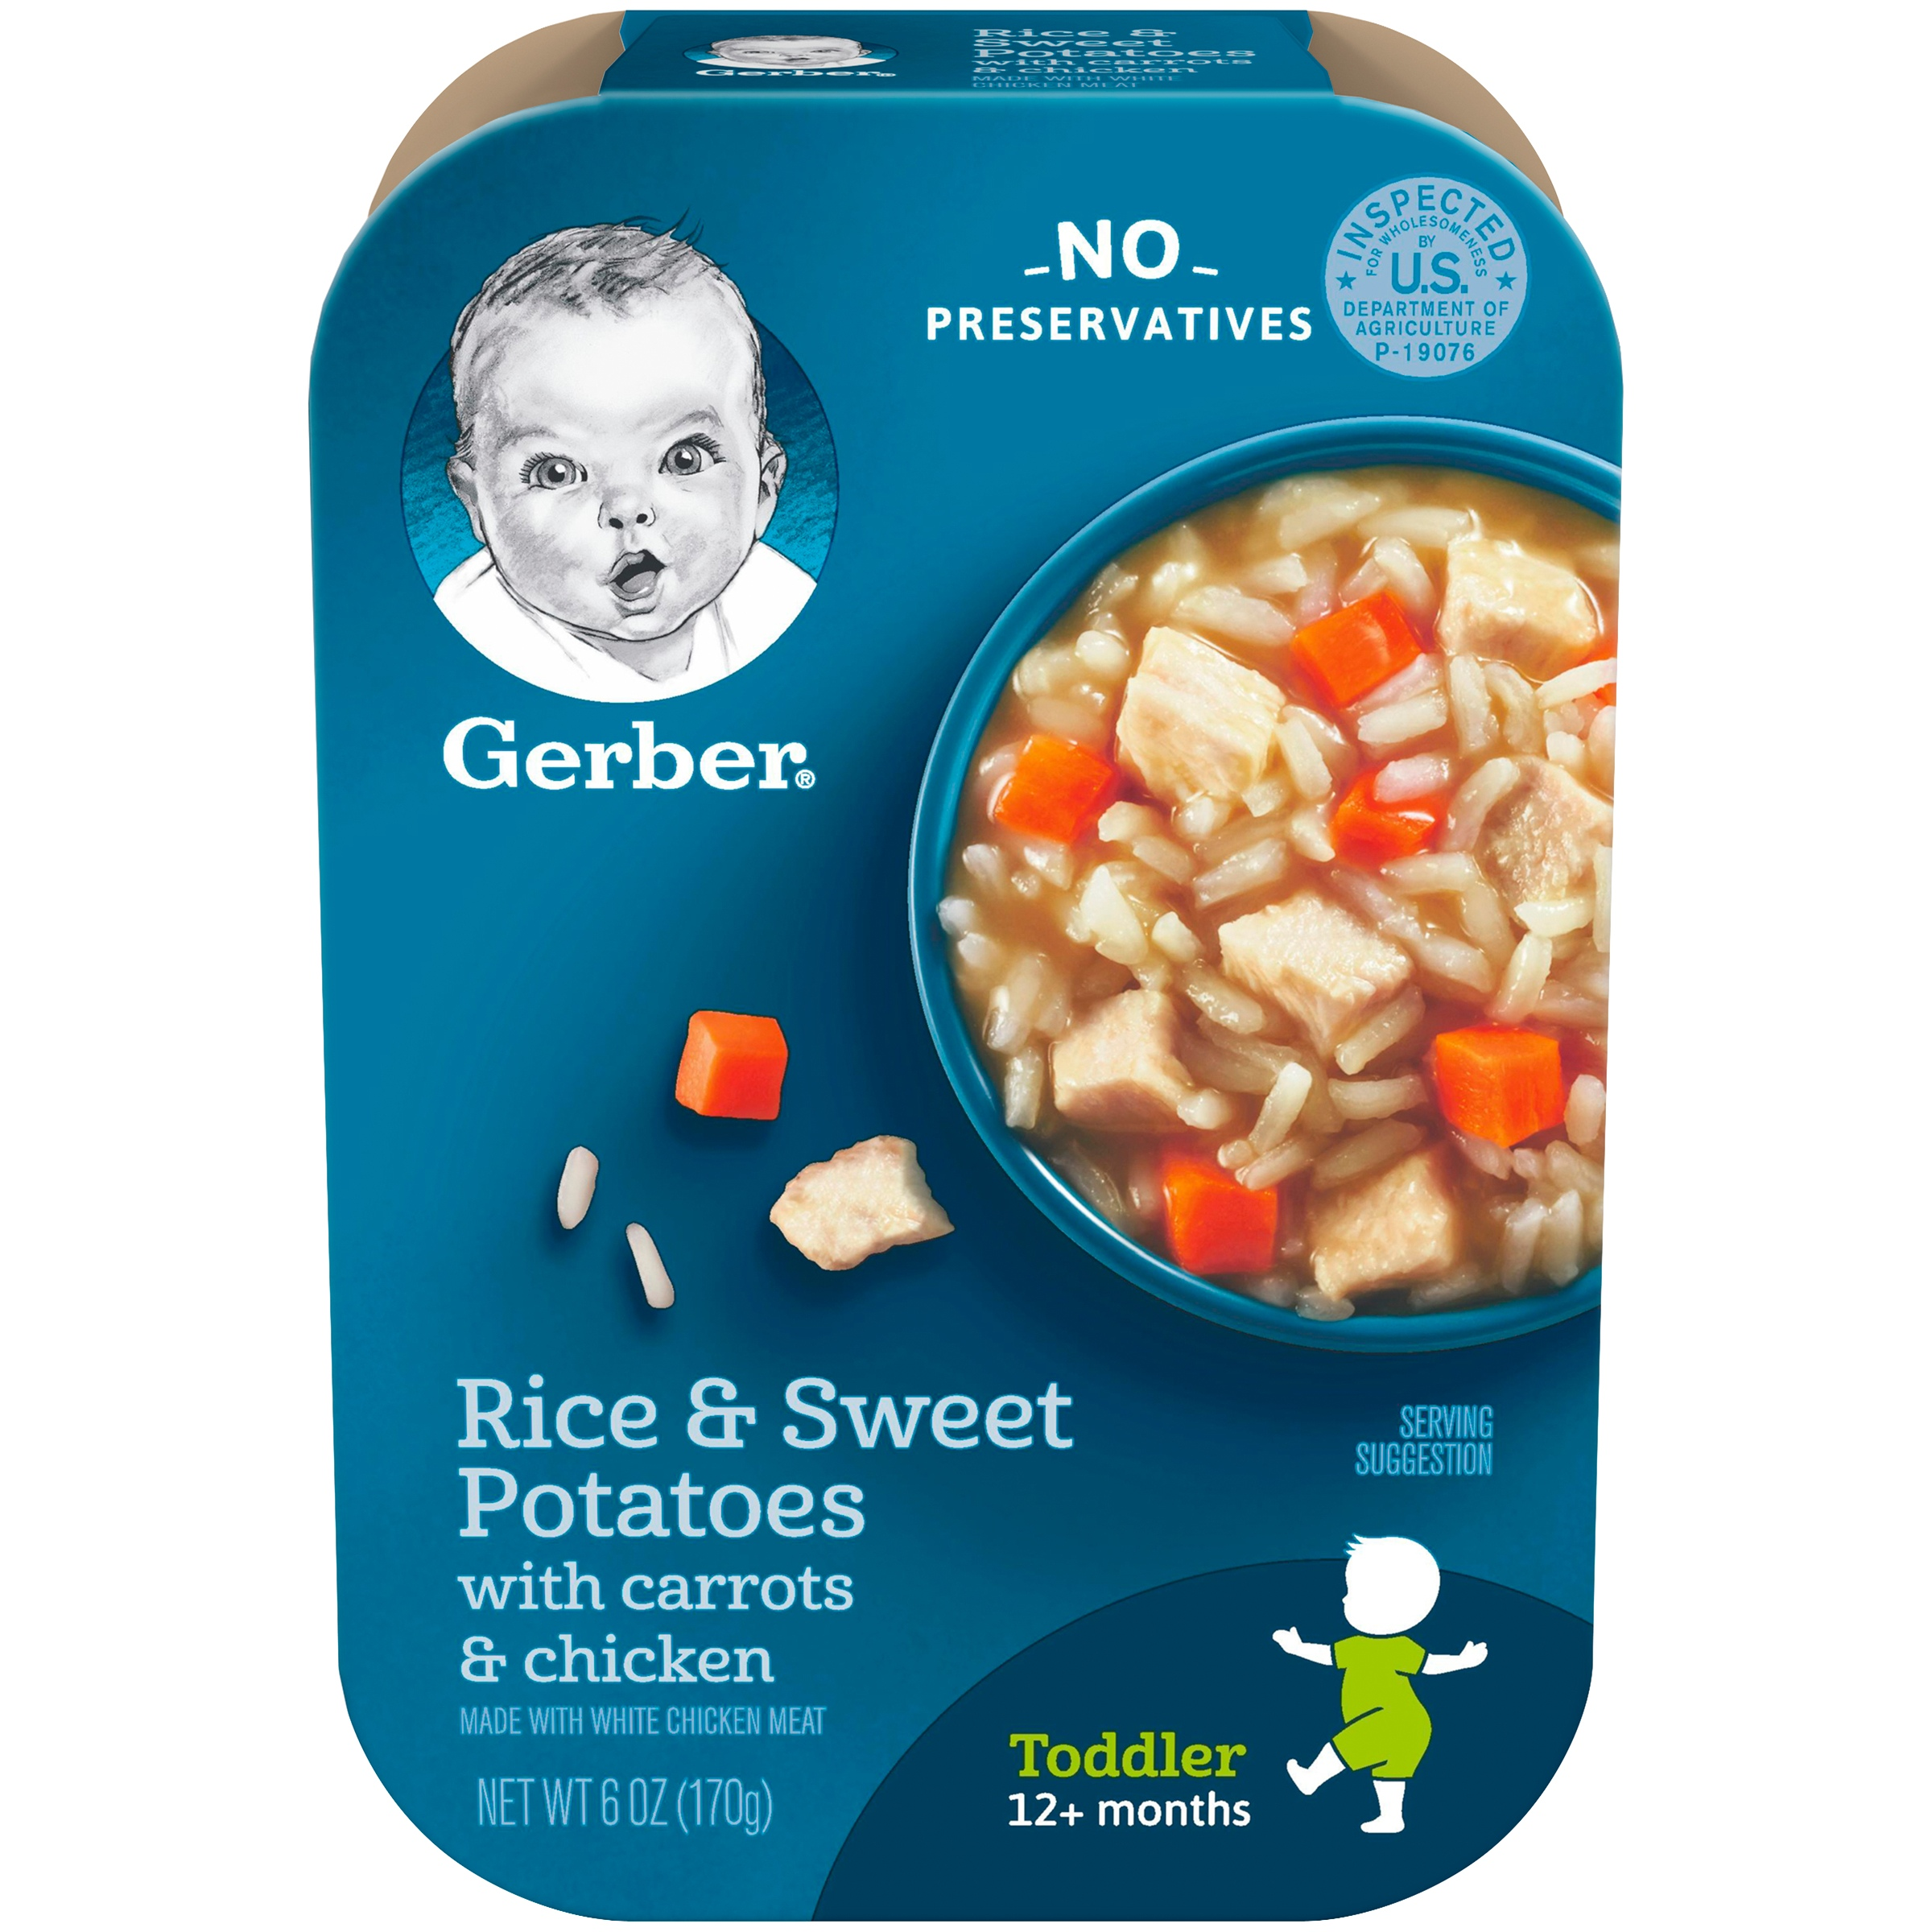 Gerber Lil' Meals, Rice and Sweet Potatoes with Carrots and Chicken, 6 oz Tray